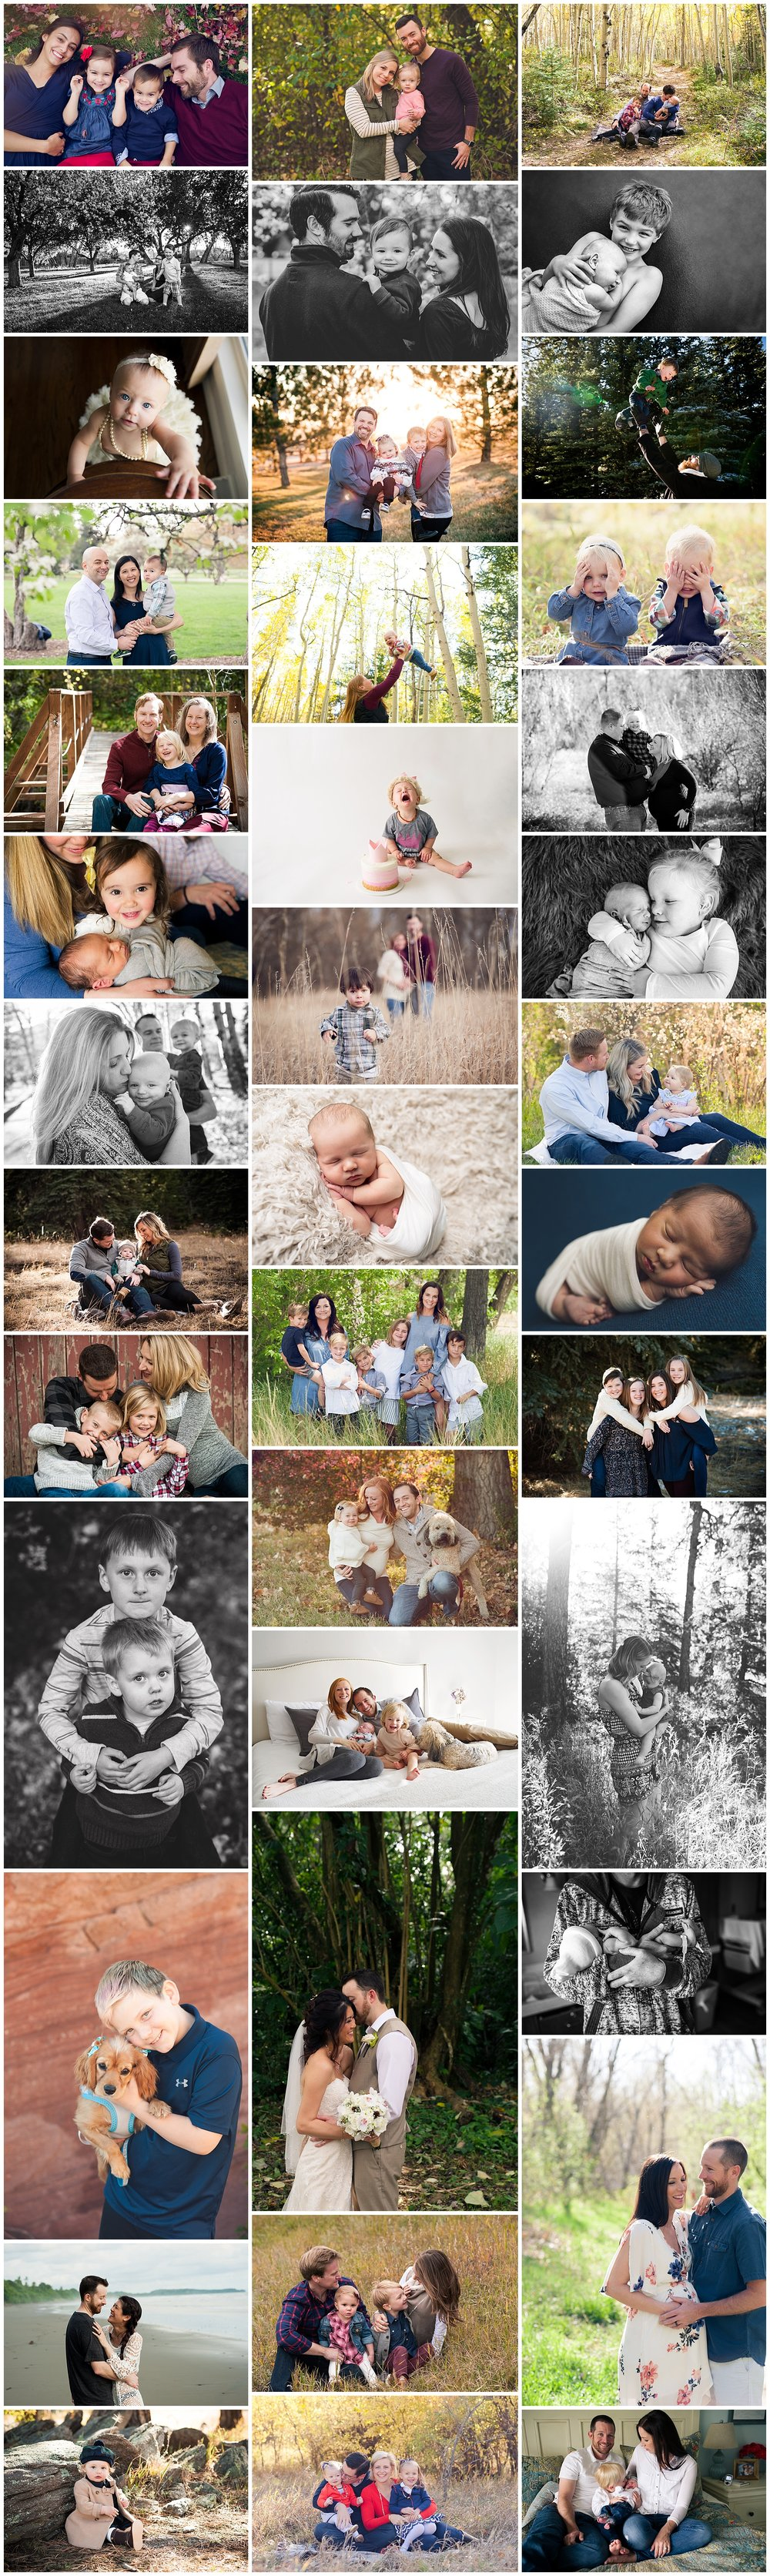 Denver-Family-Photographer.jpg